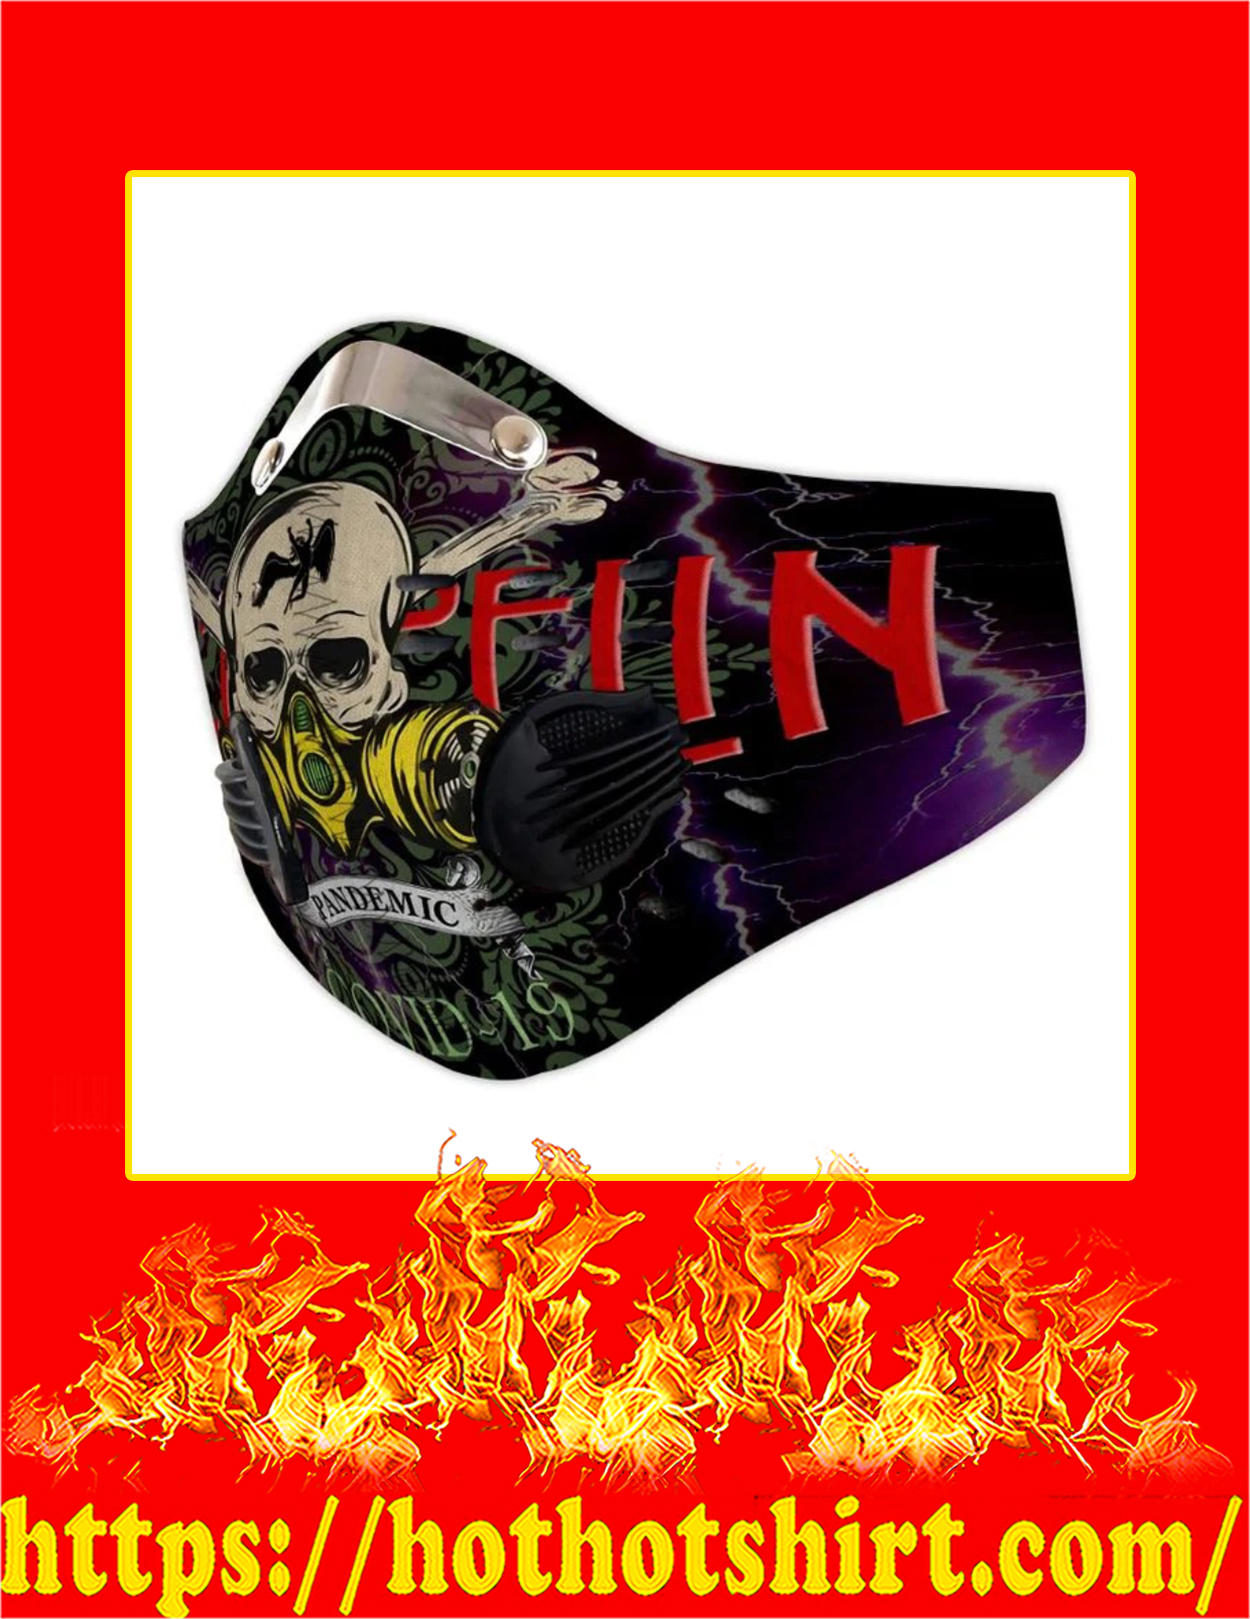 Led zeppelin pandemic covid 19 filter face mask - Pic 1